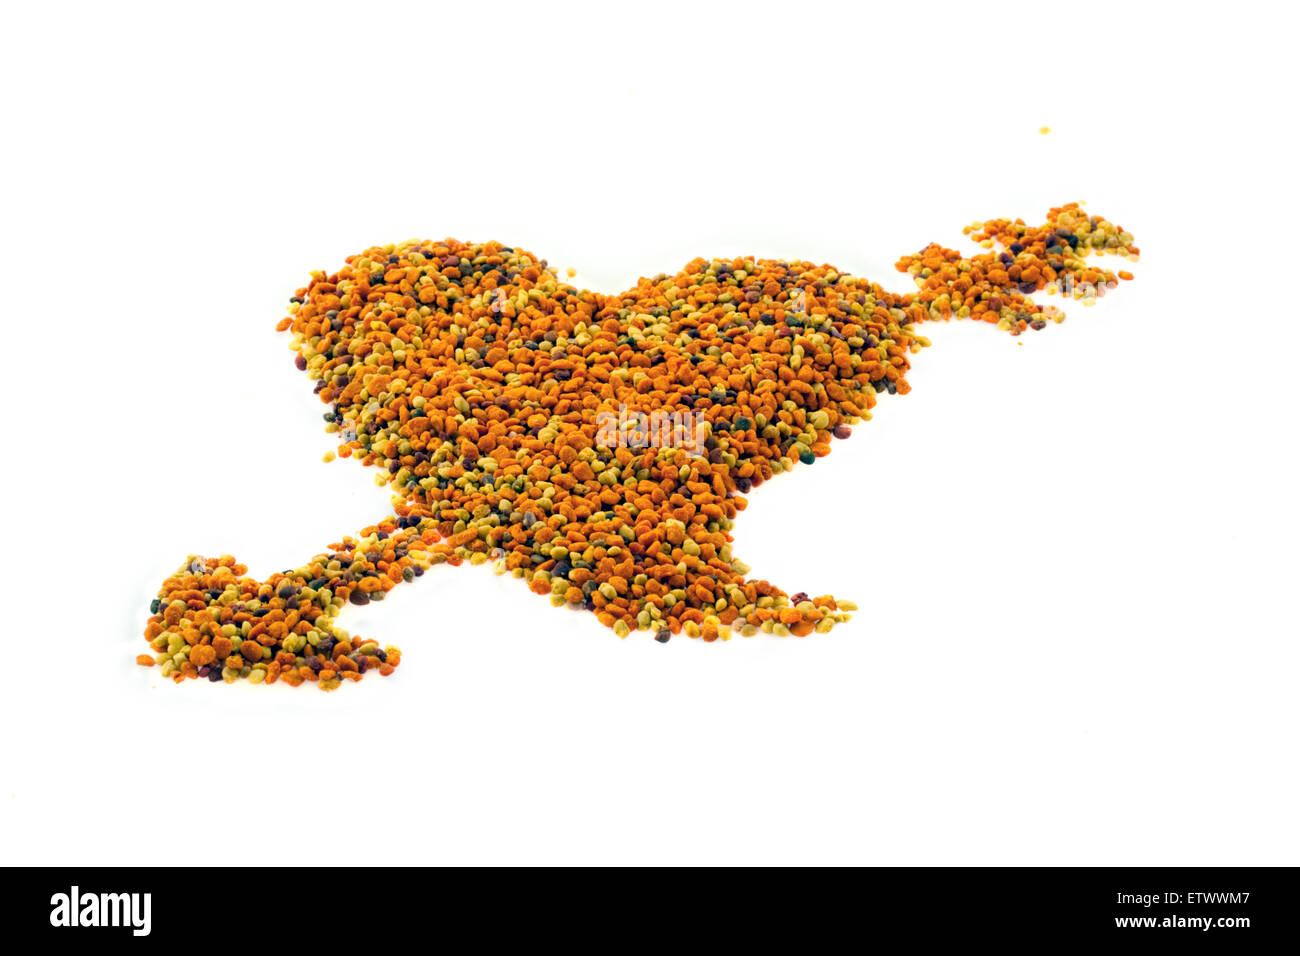 heart with arrow shaped dried honey bee pollen grains mix macro - Stock Image